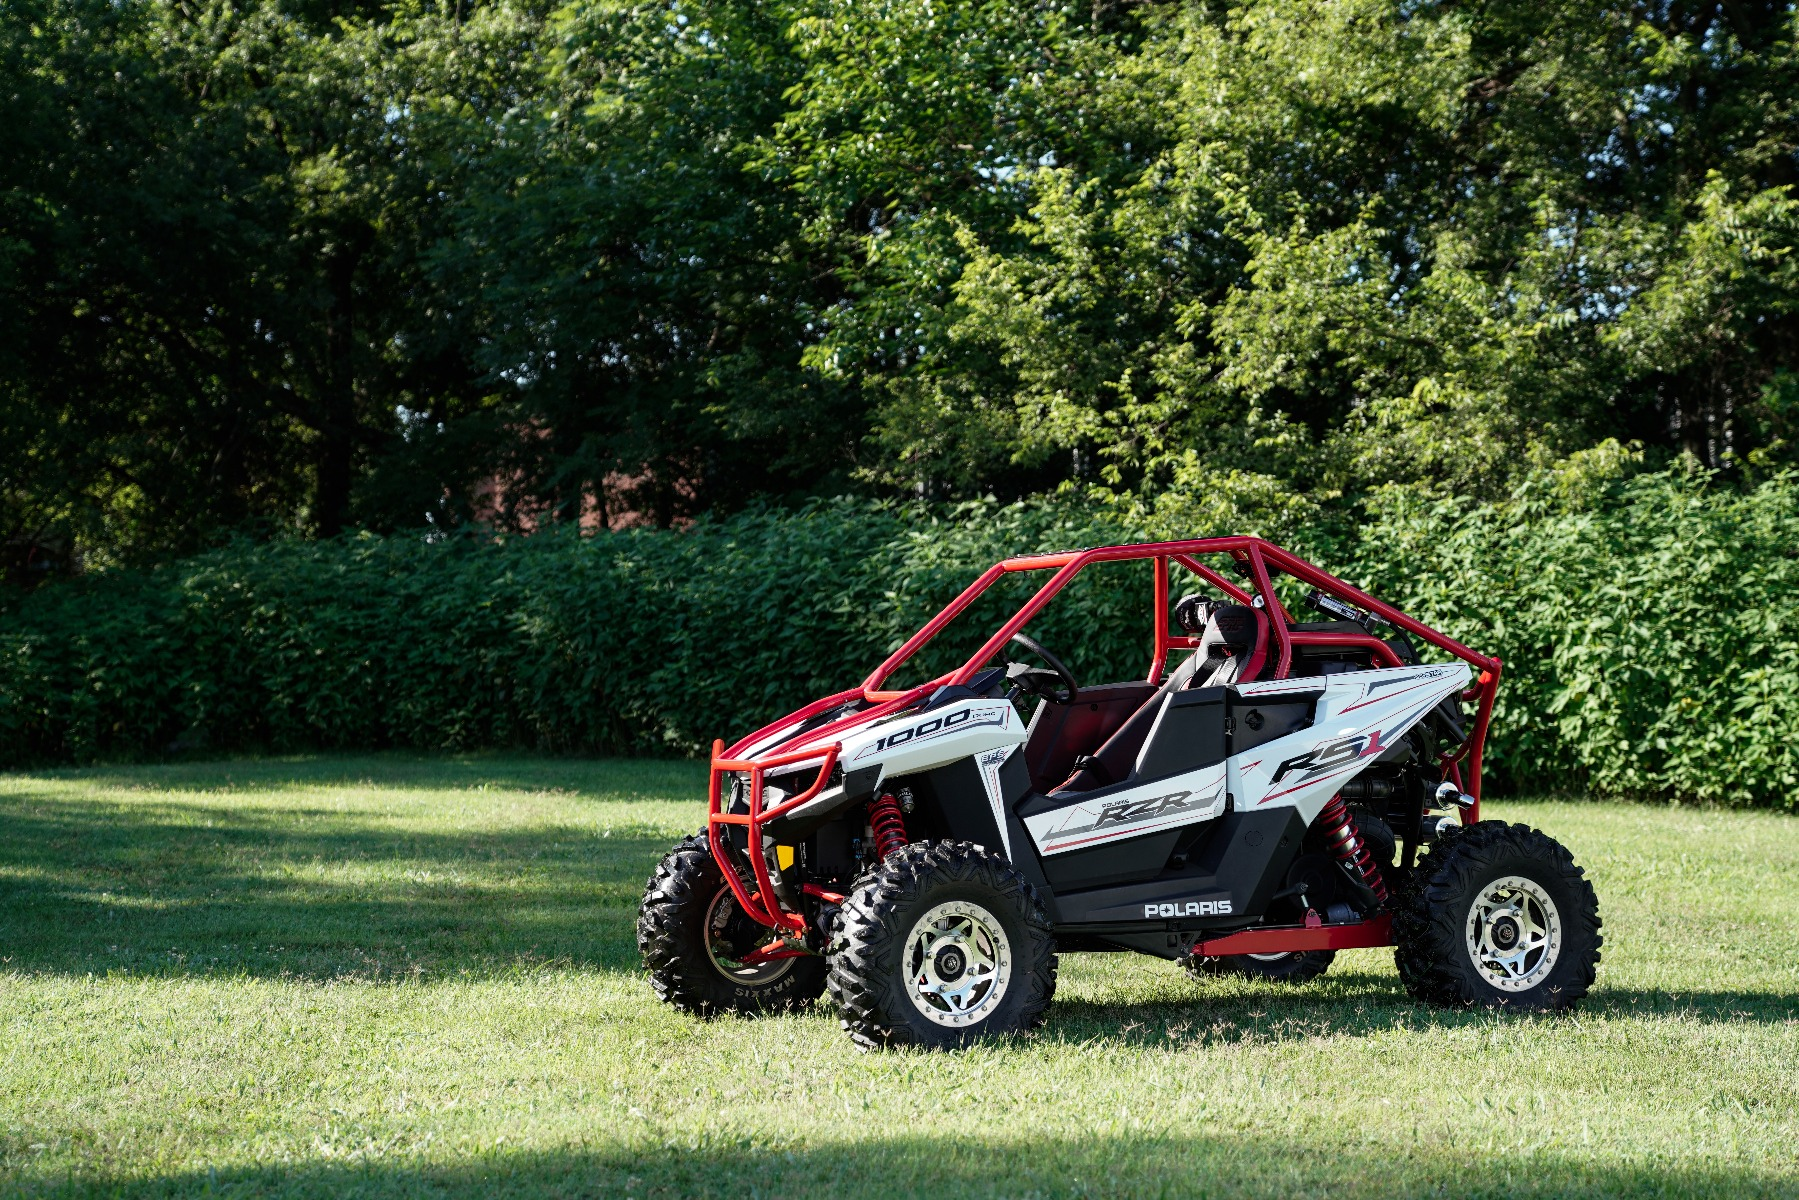 Polaris RZR RS1 Roll Cage in grass Image 6